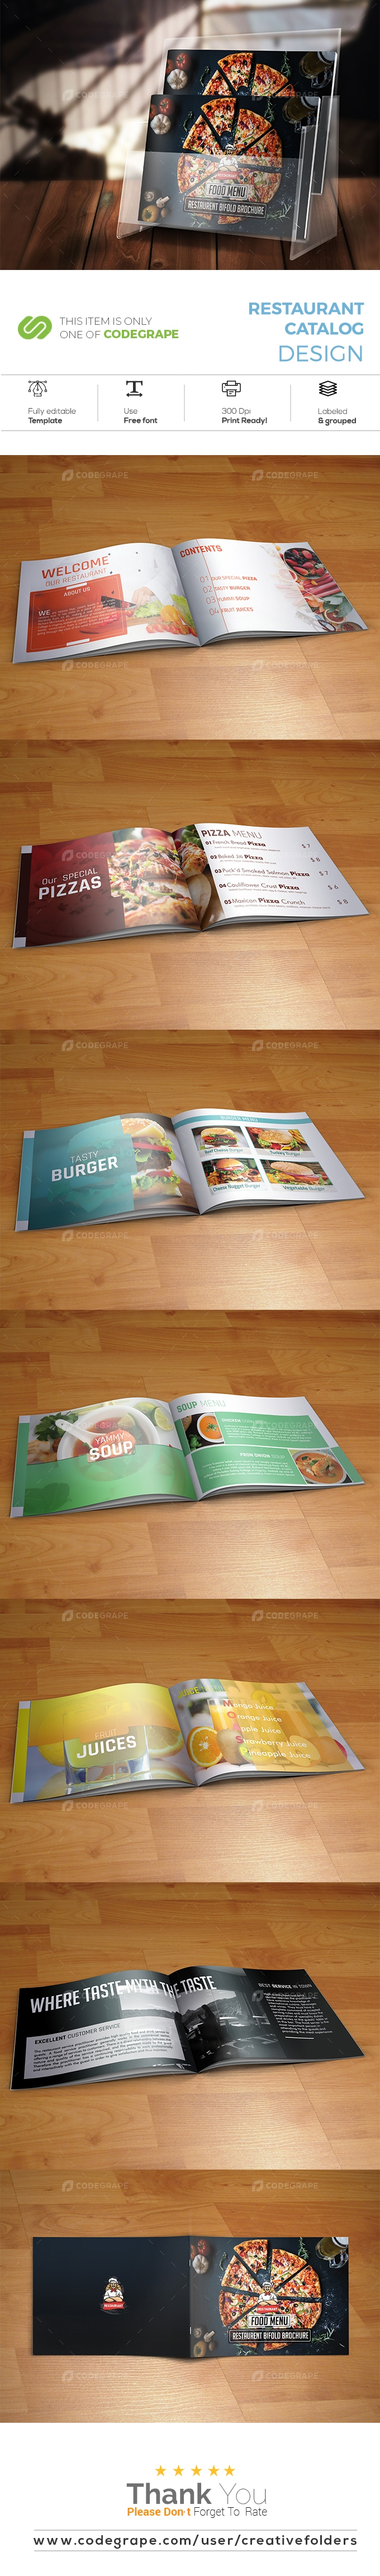 Restaurant Catalog Design